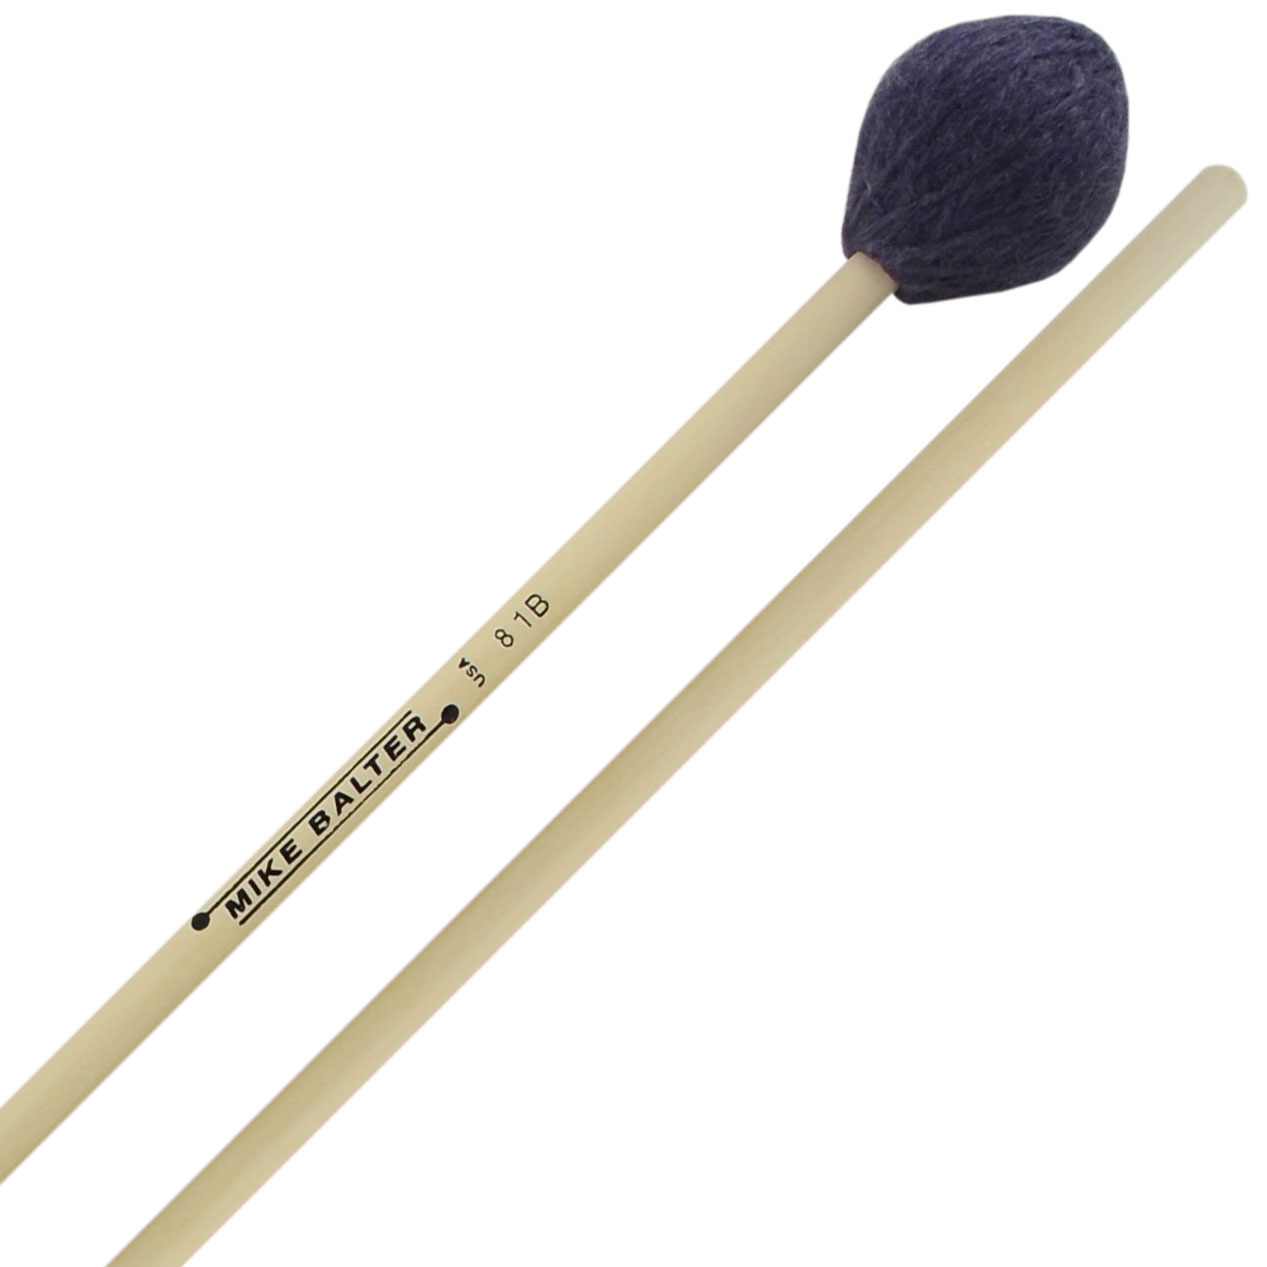 Mike Balter Contemporary Series Hard Marimba Mallets with Birch Handles